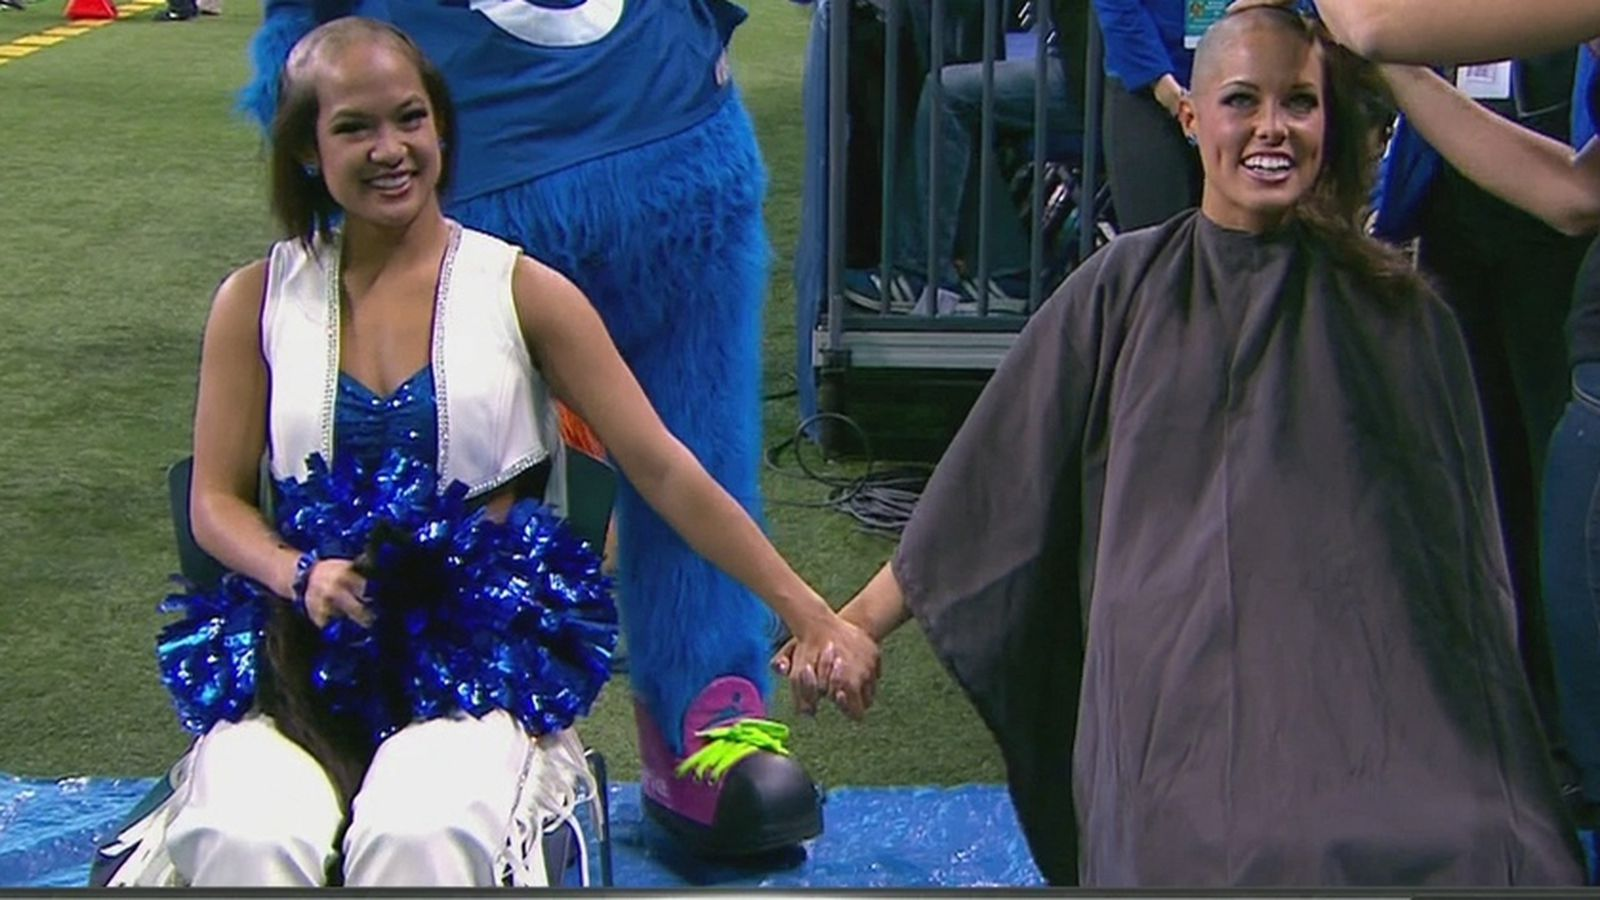 Colts Cheerleaders Shave Heads For Cancer Awareness Chuck